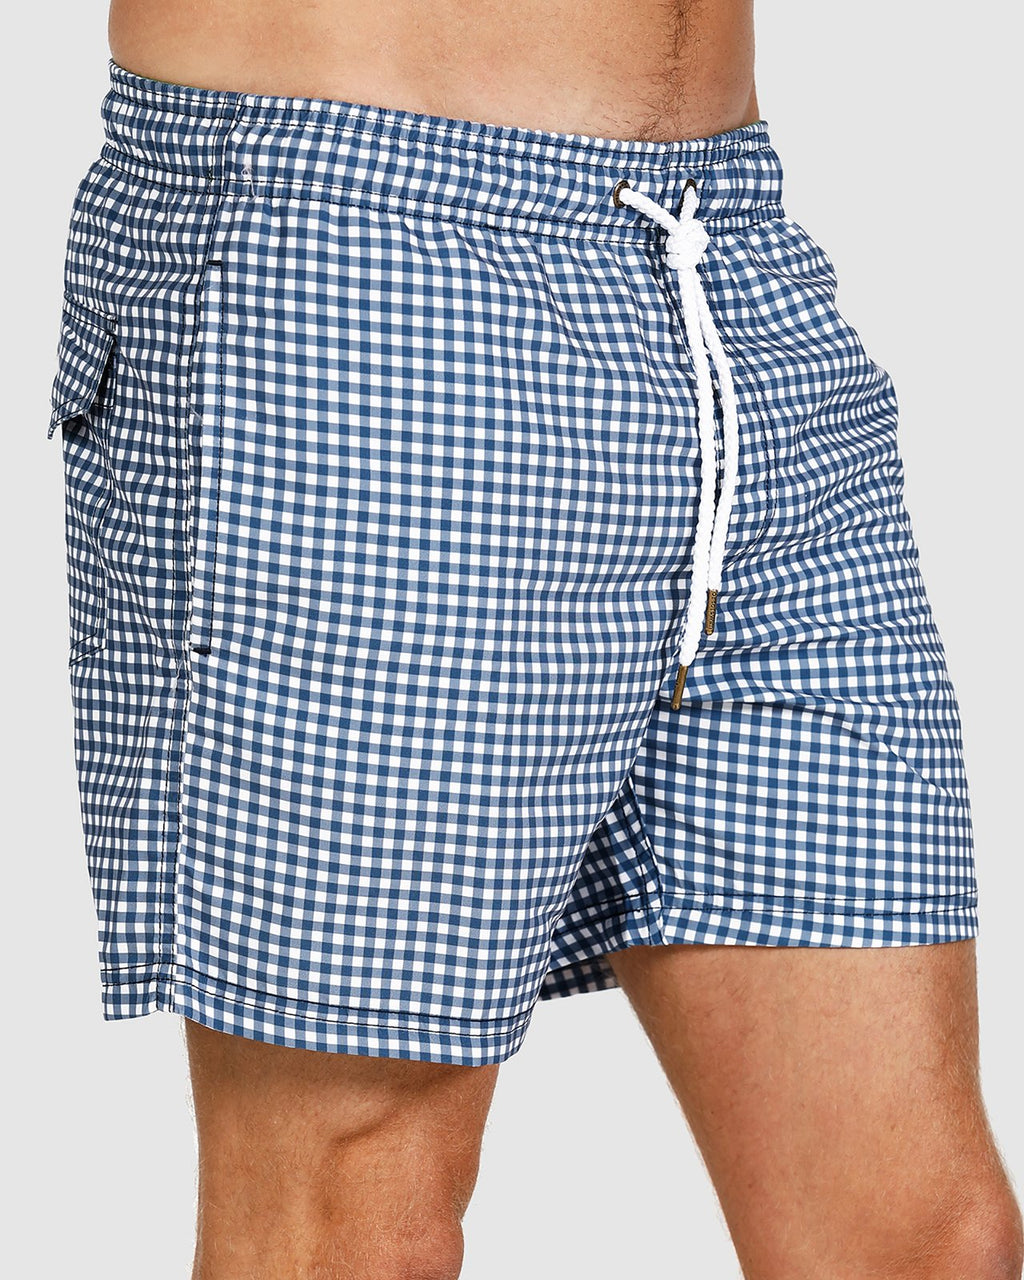 HORROCKS JNR SHORTS